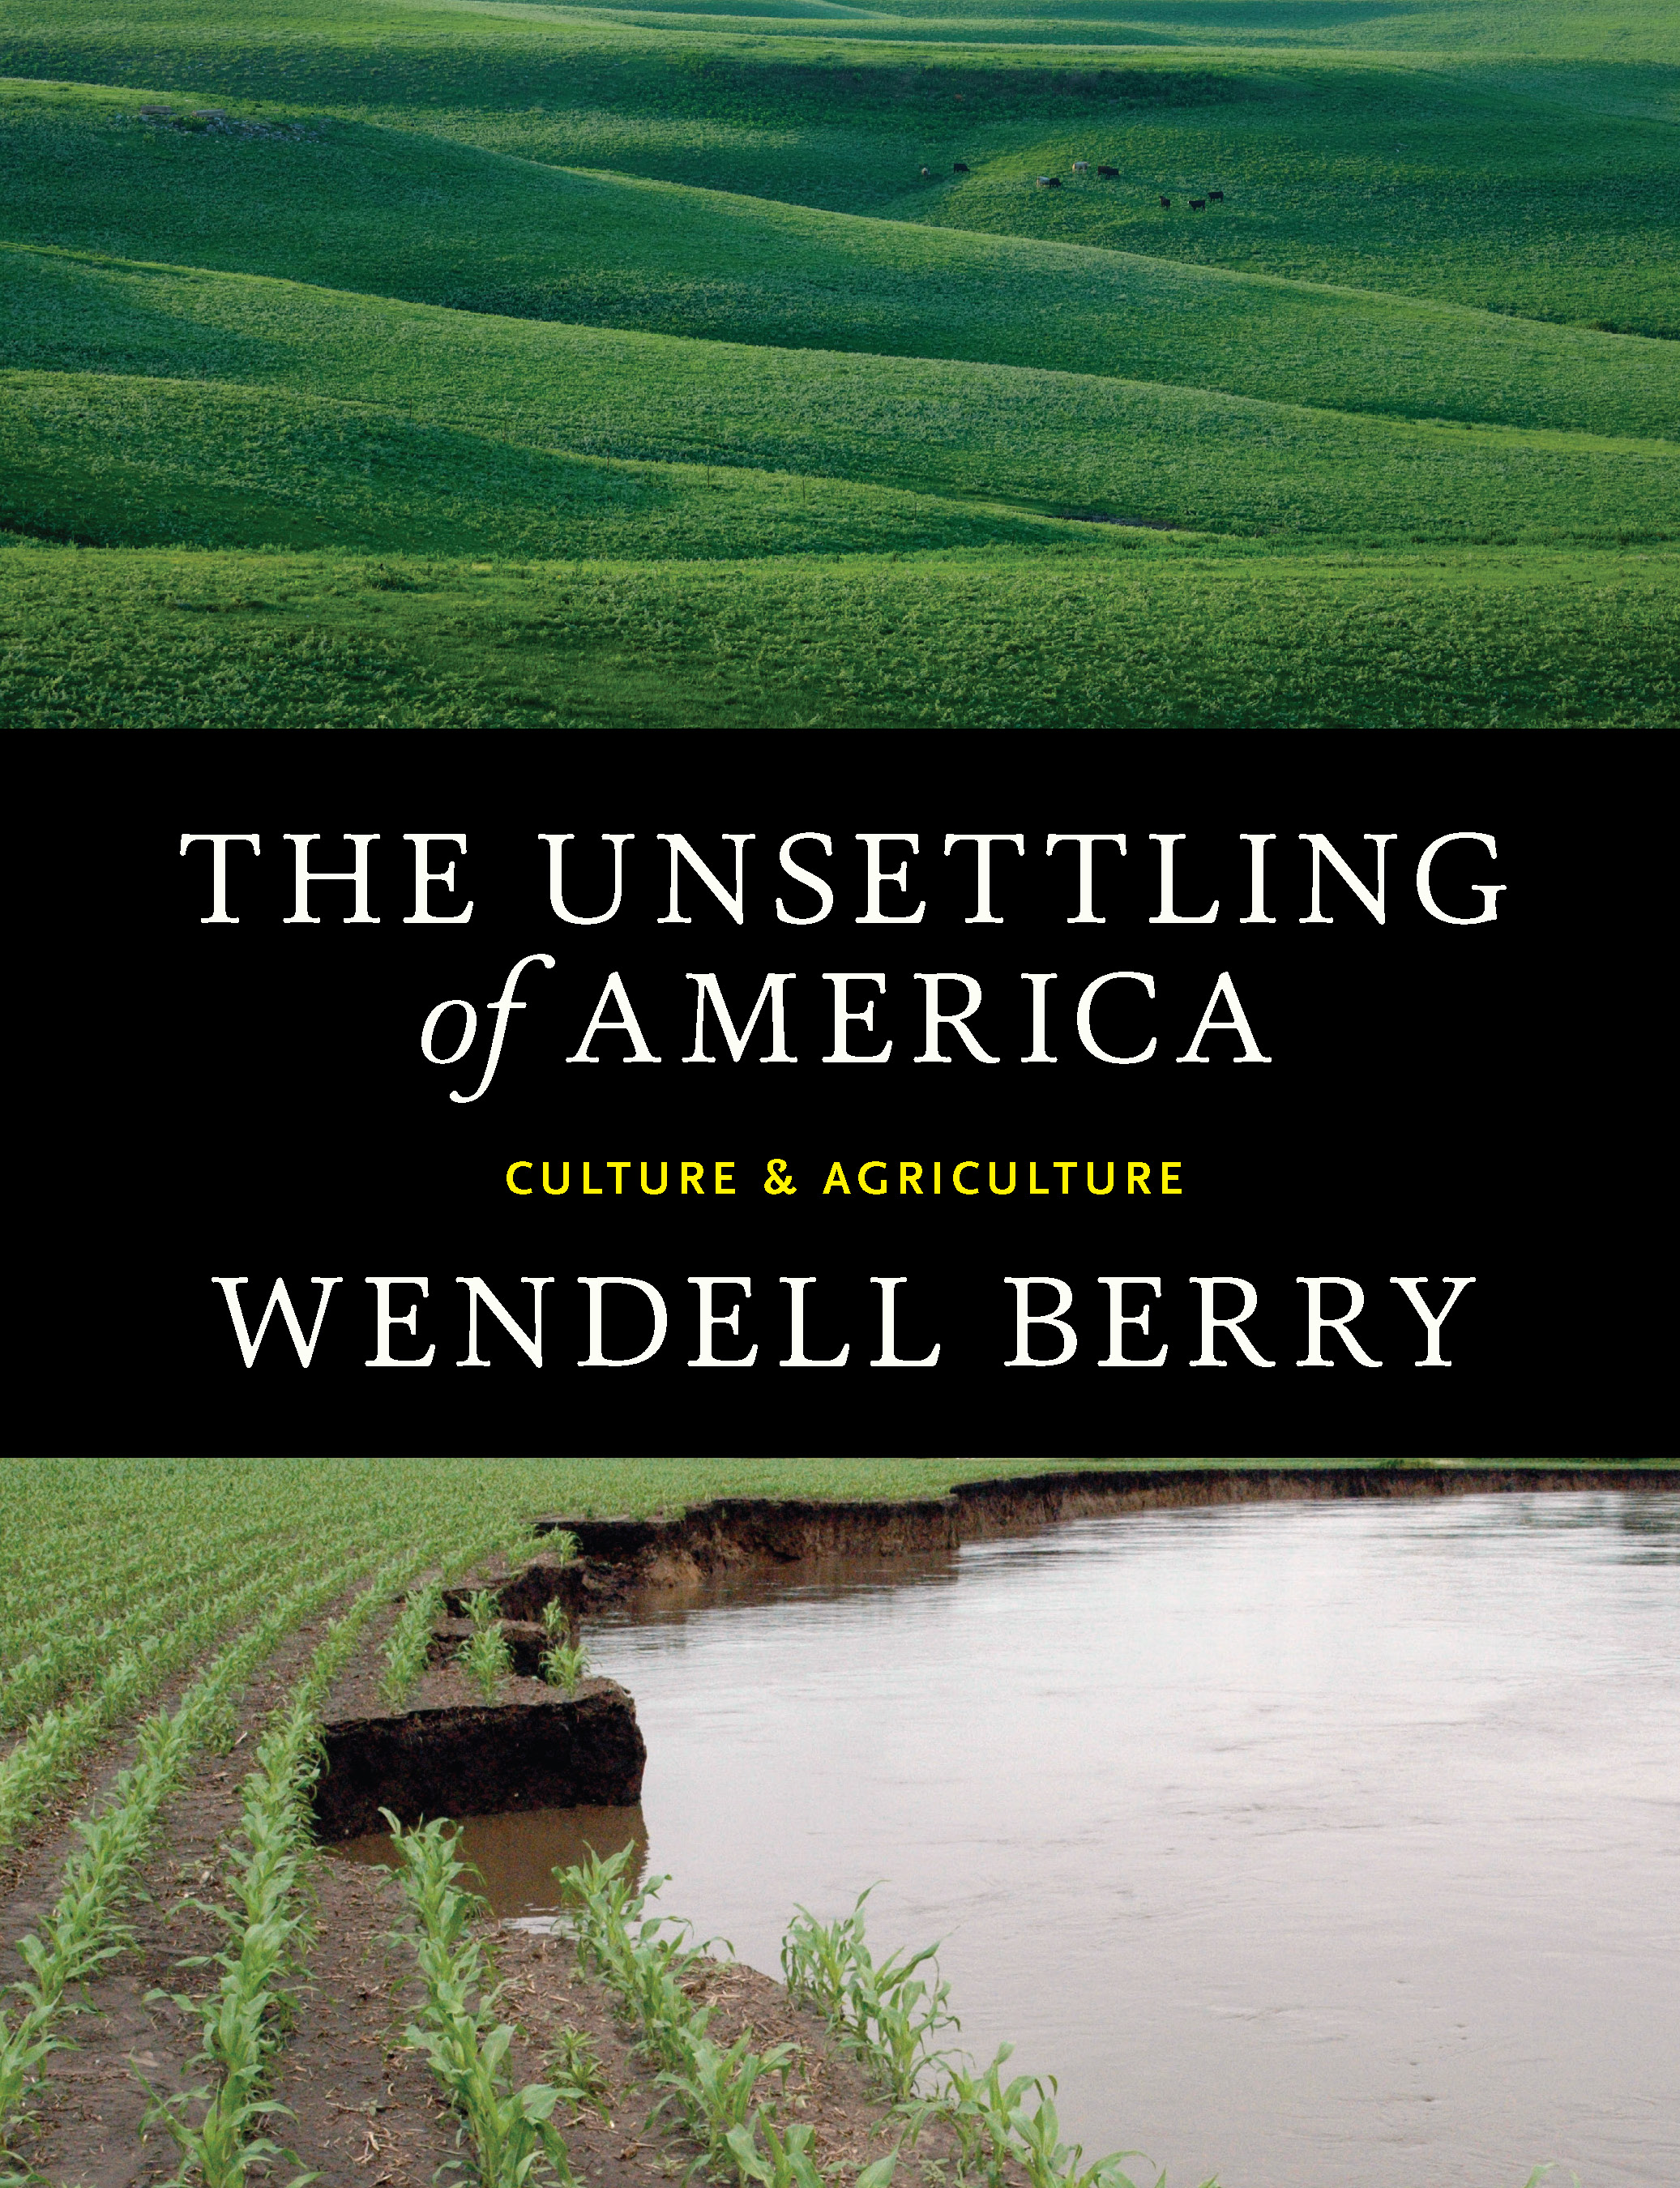 "The Unsettling of America - by Wendell Berry""A look into Culture and Agriculture. How Agri-business takes farming out of its cultural context and away from families, distancing current populations from an understanding and appreciation of the land.""- Jim Figurski, Senior Associate, Landscape Architect"